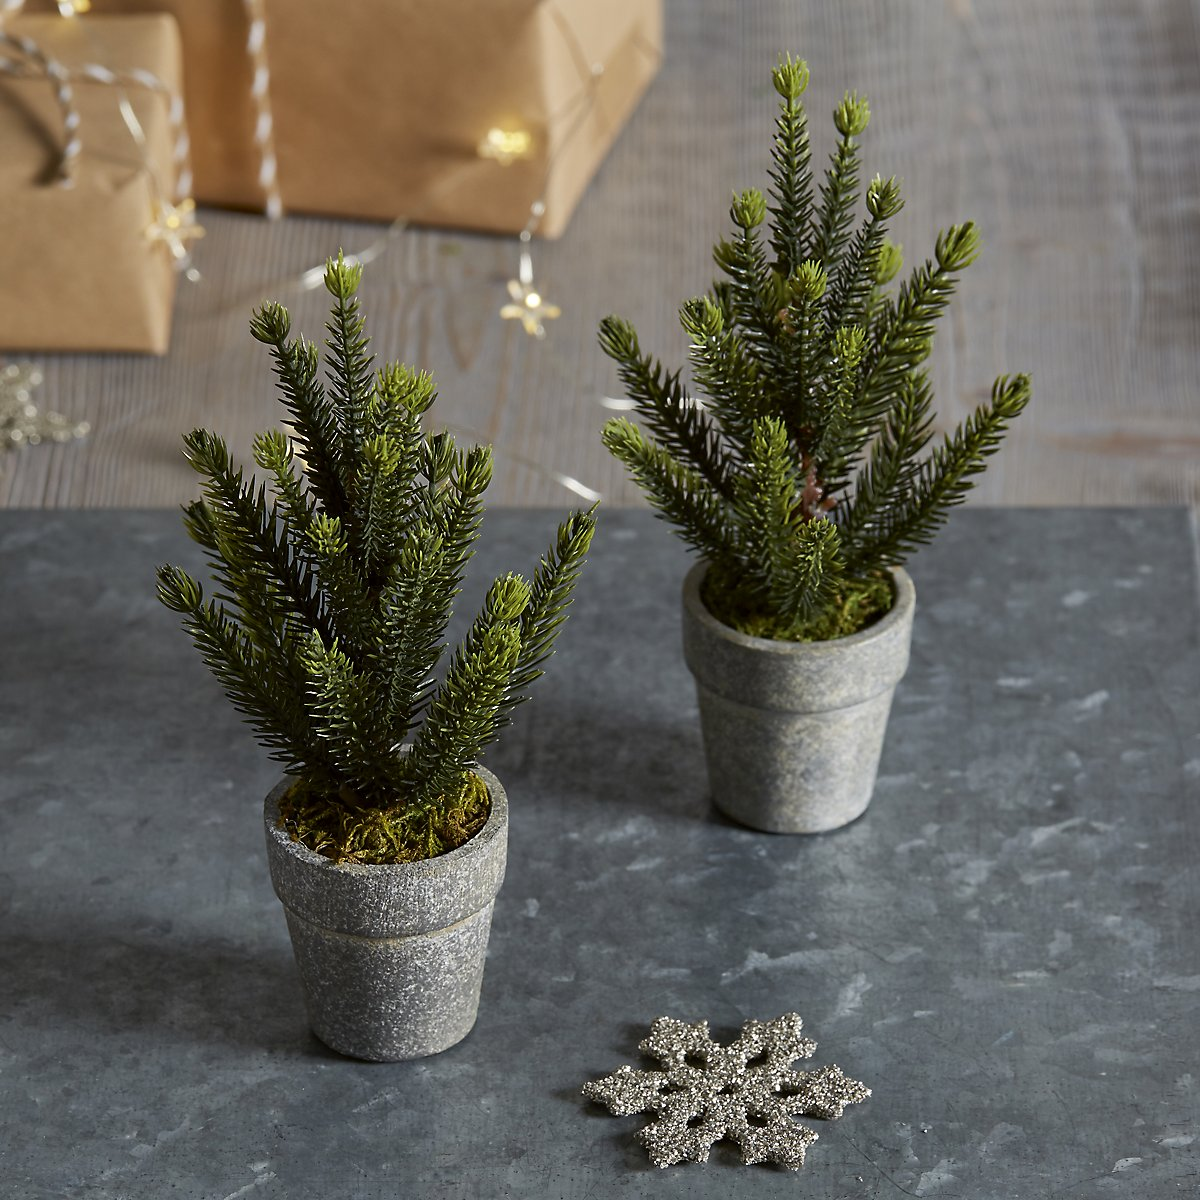 Mini Potted Spruce Christmas Tree £8.40